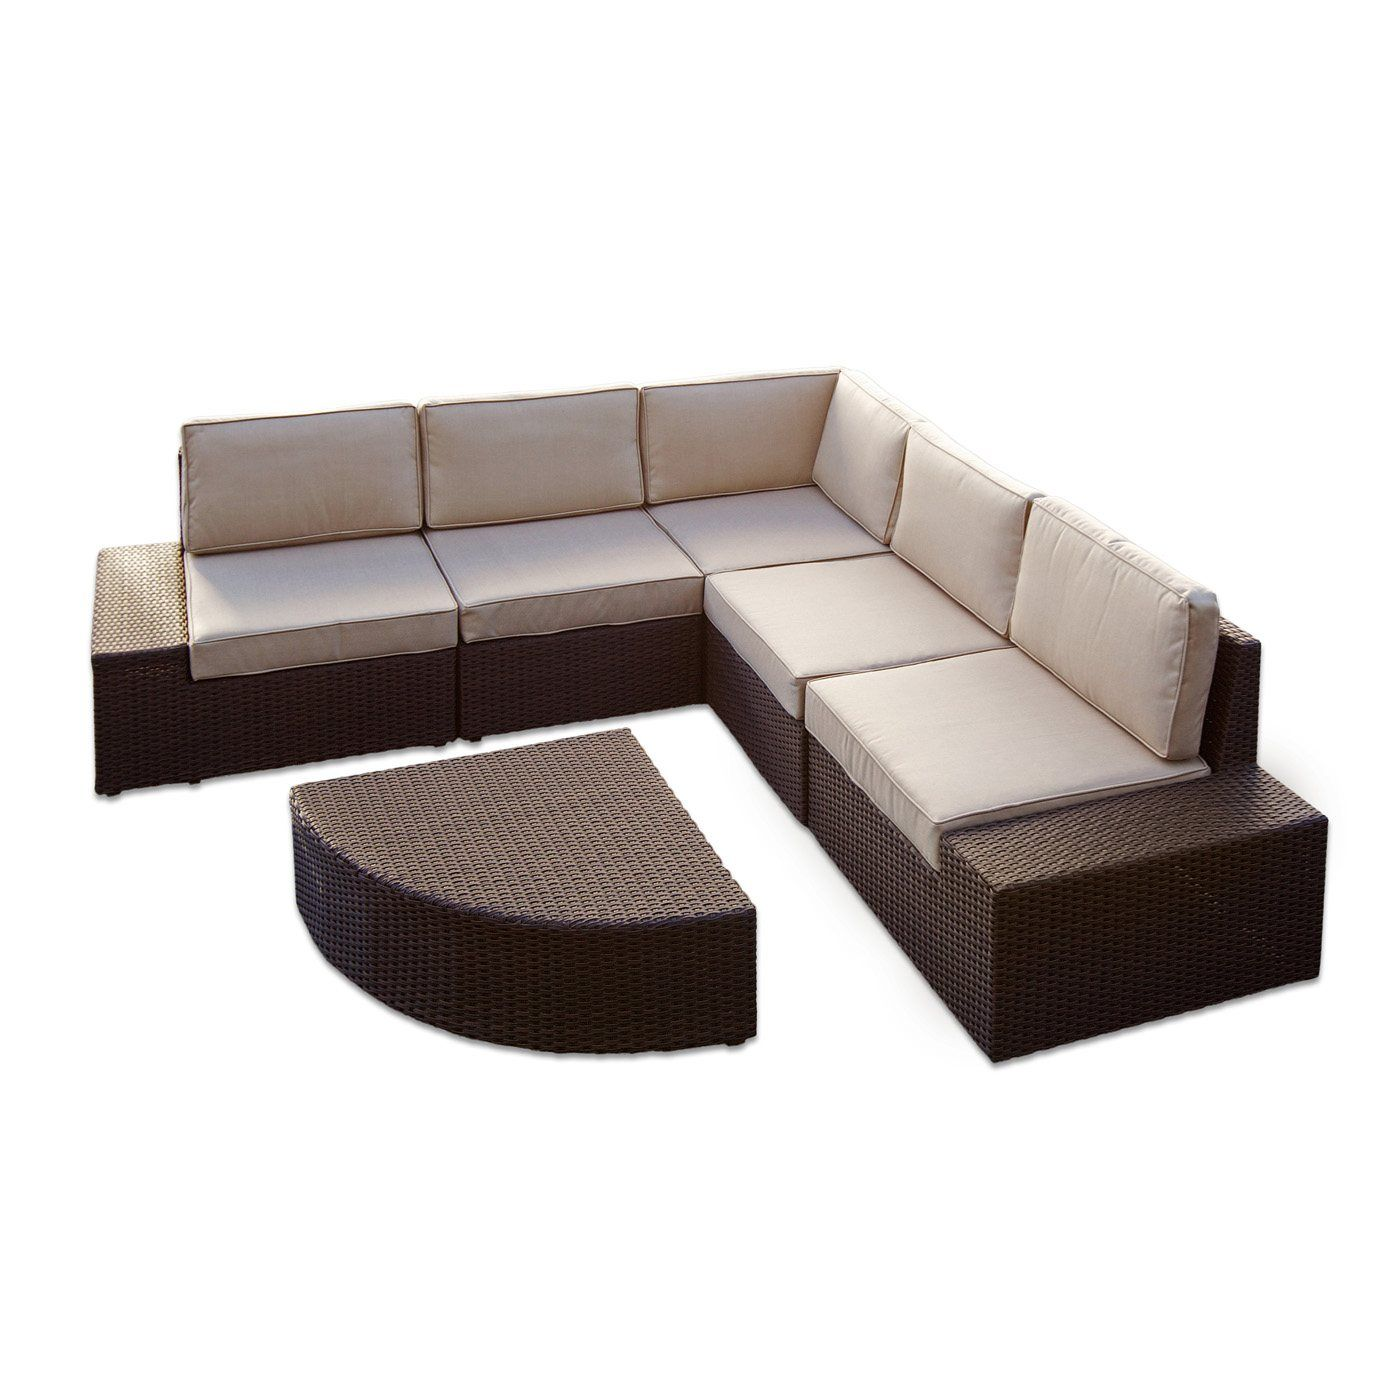 sectional sofas lowes chesterfield vine sofa best selling home decor santa cruz outdoor set lowe